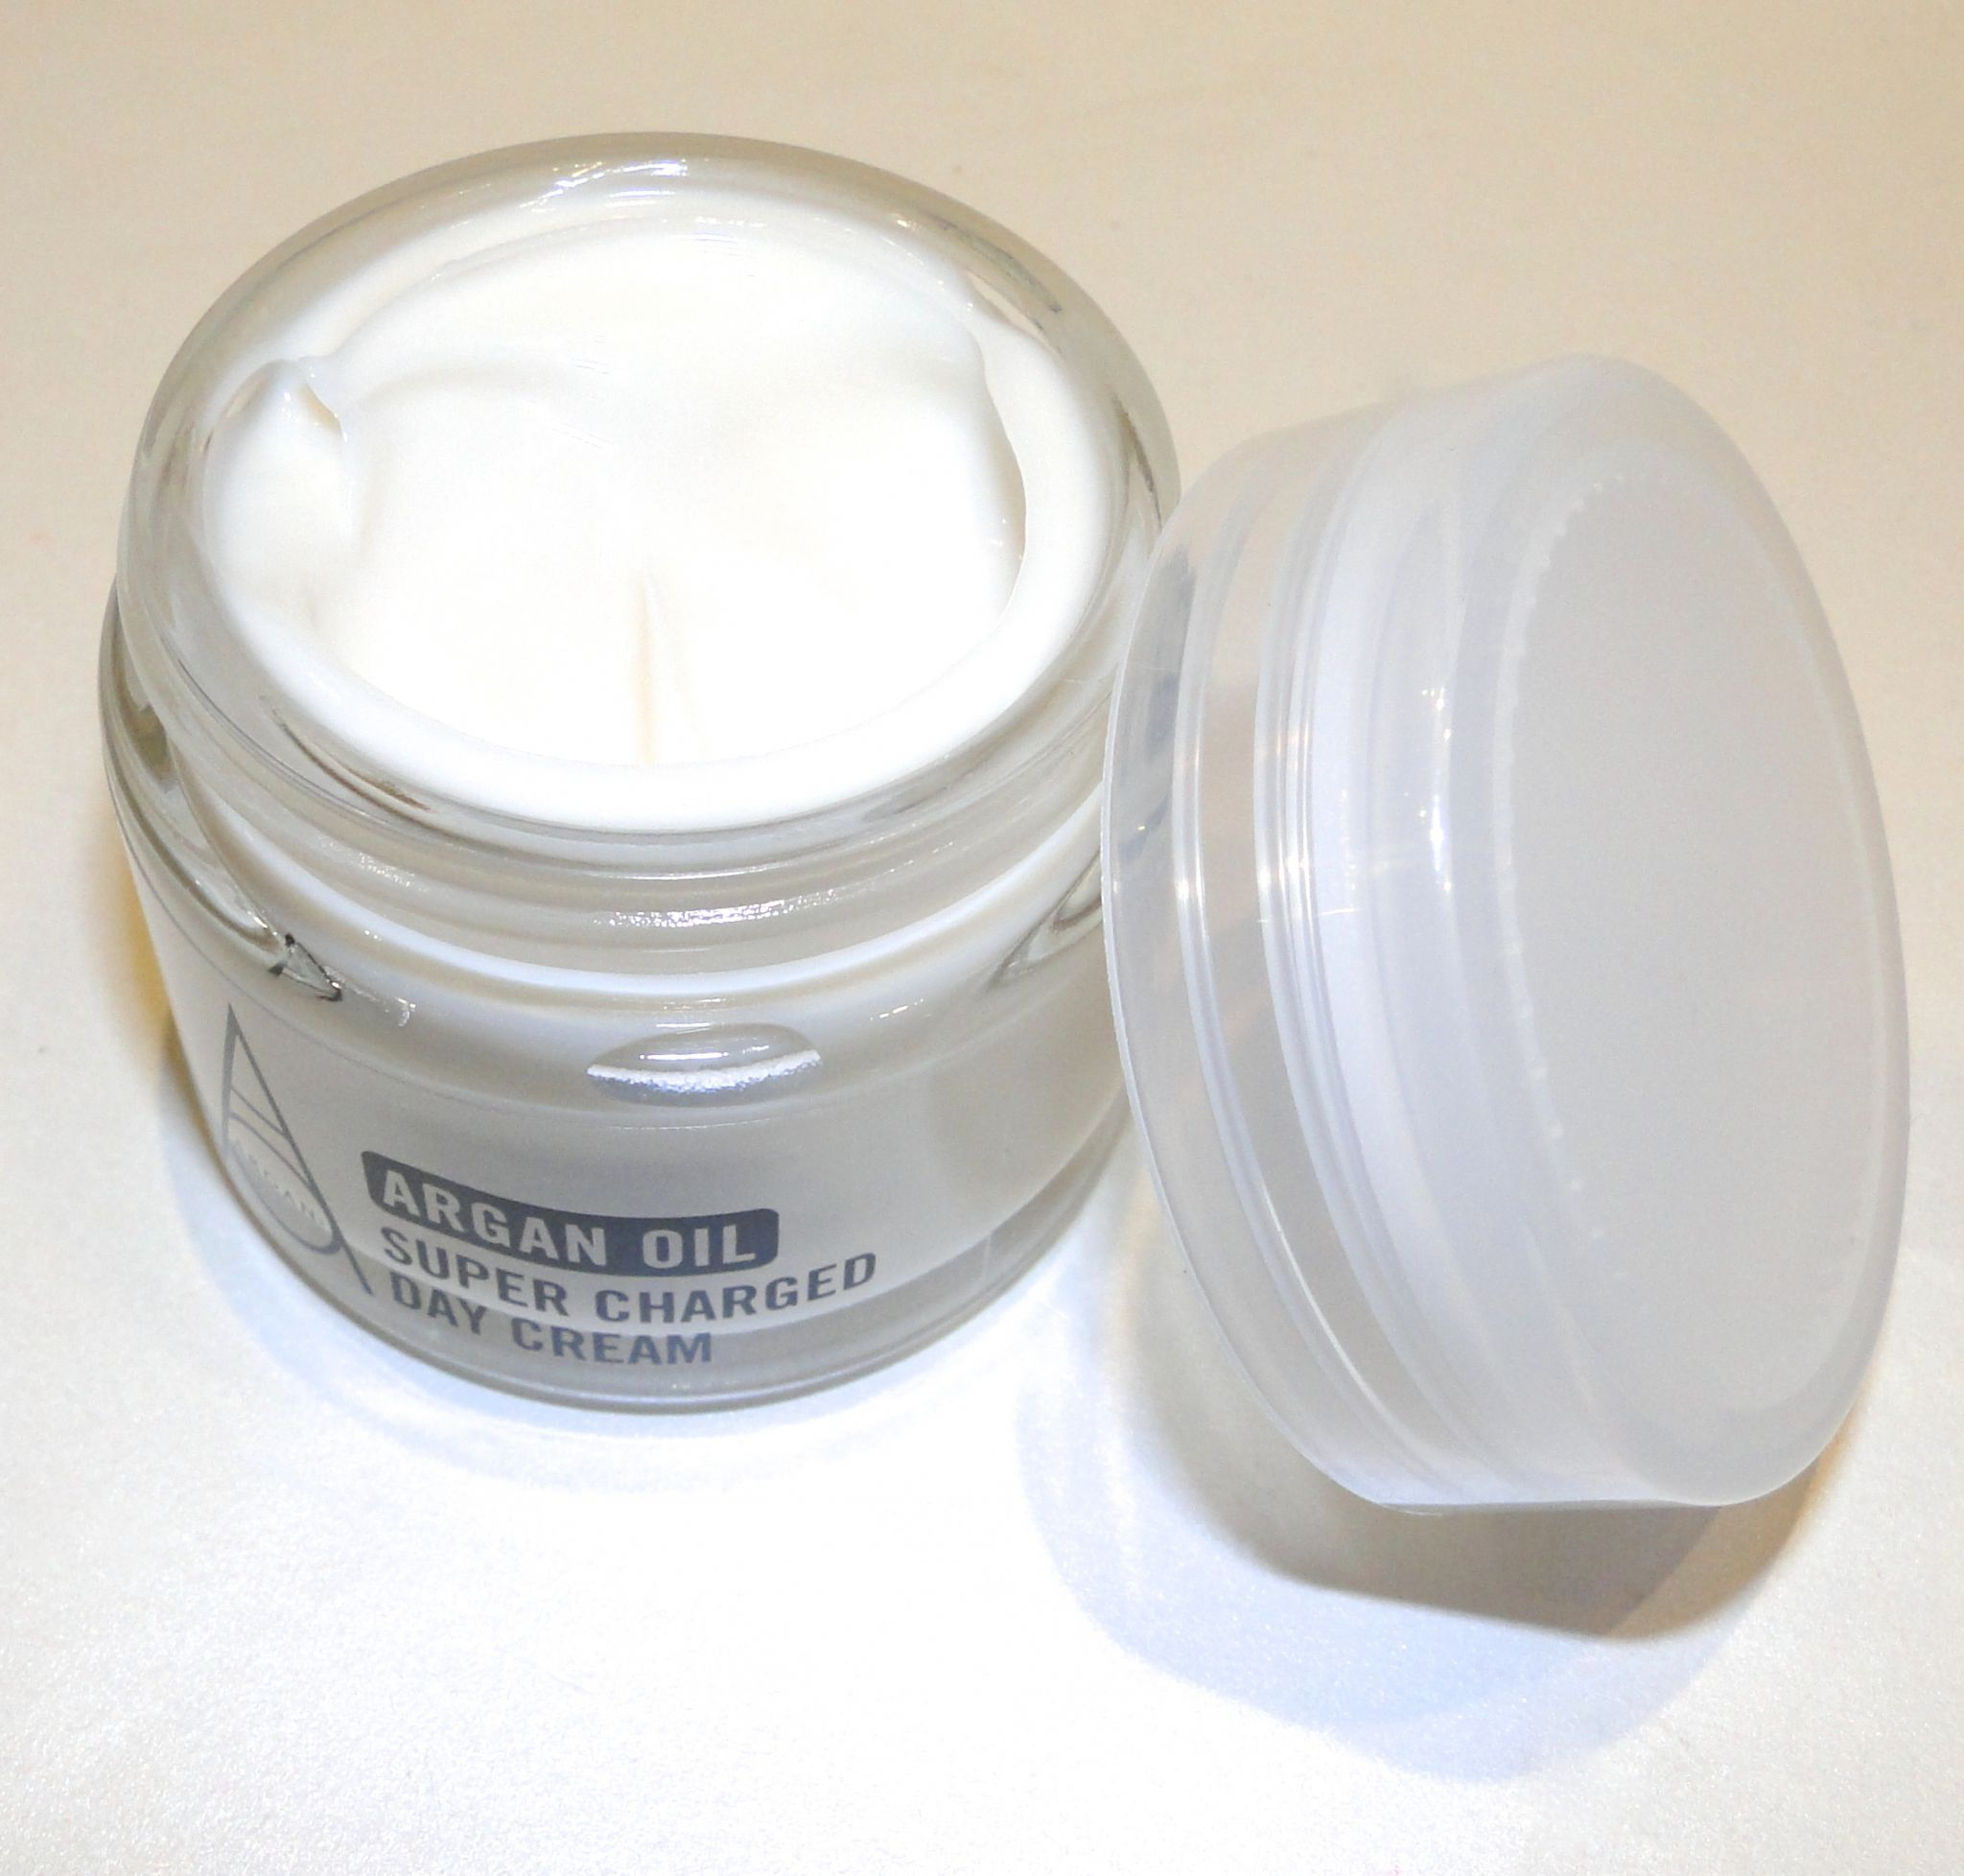 Argan 5 Super Charged Day Cream 2